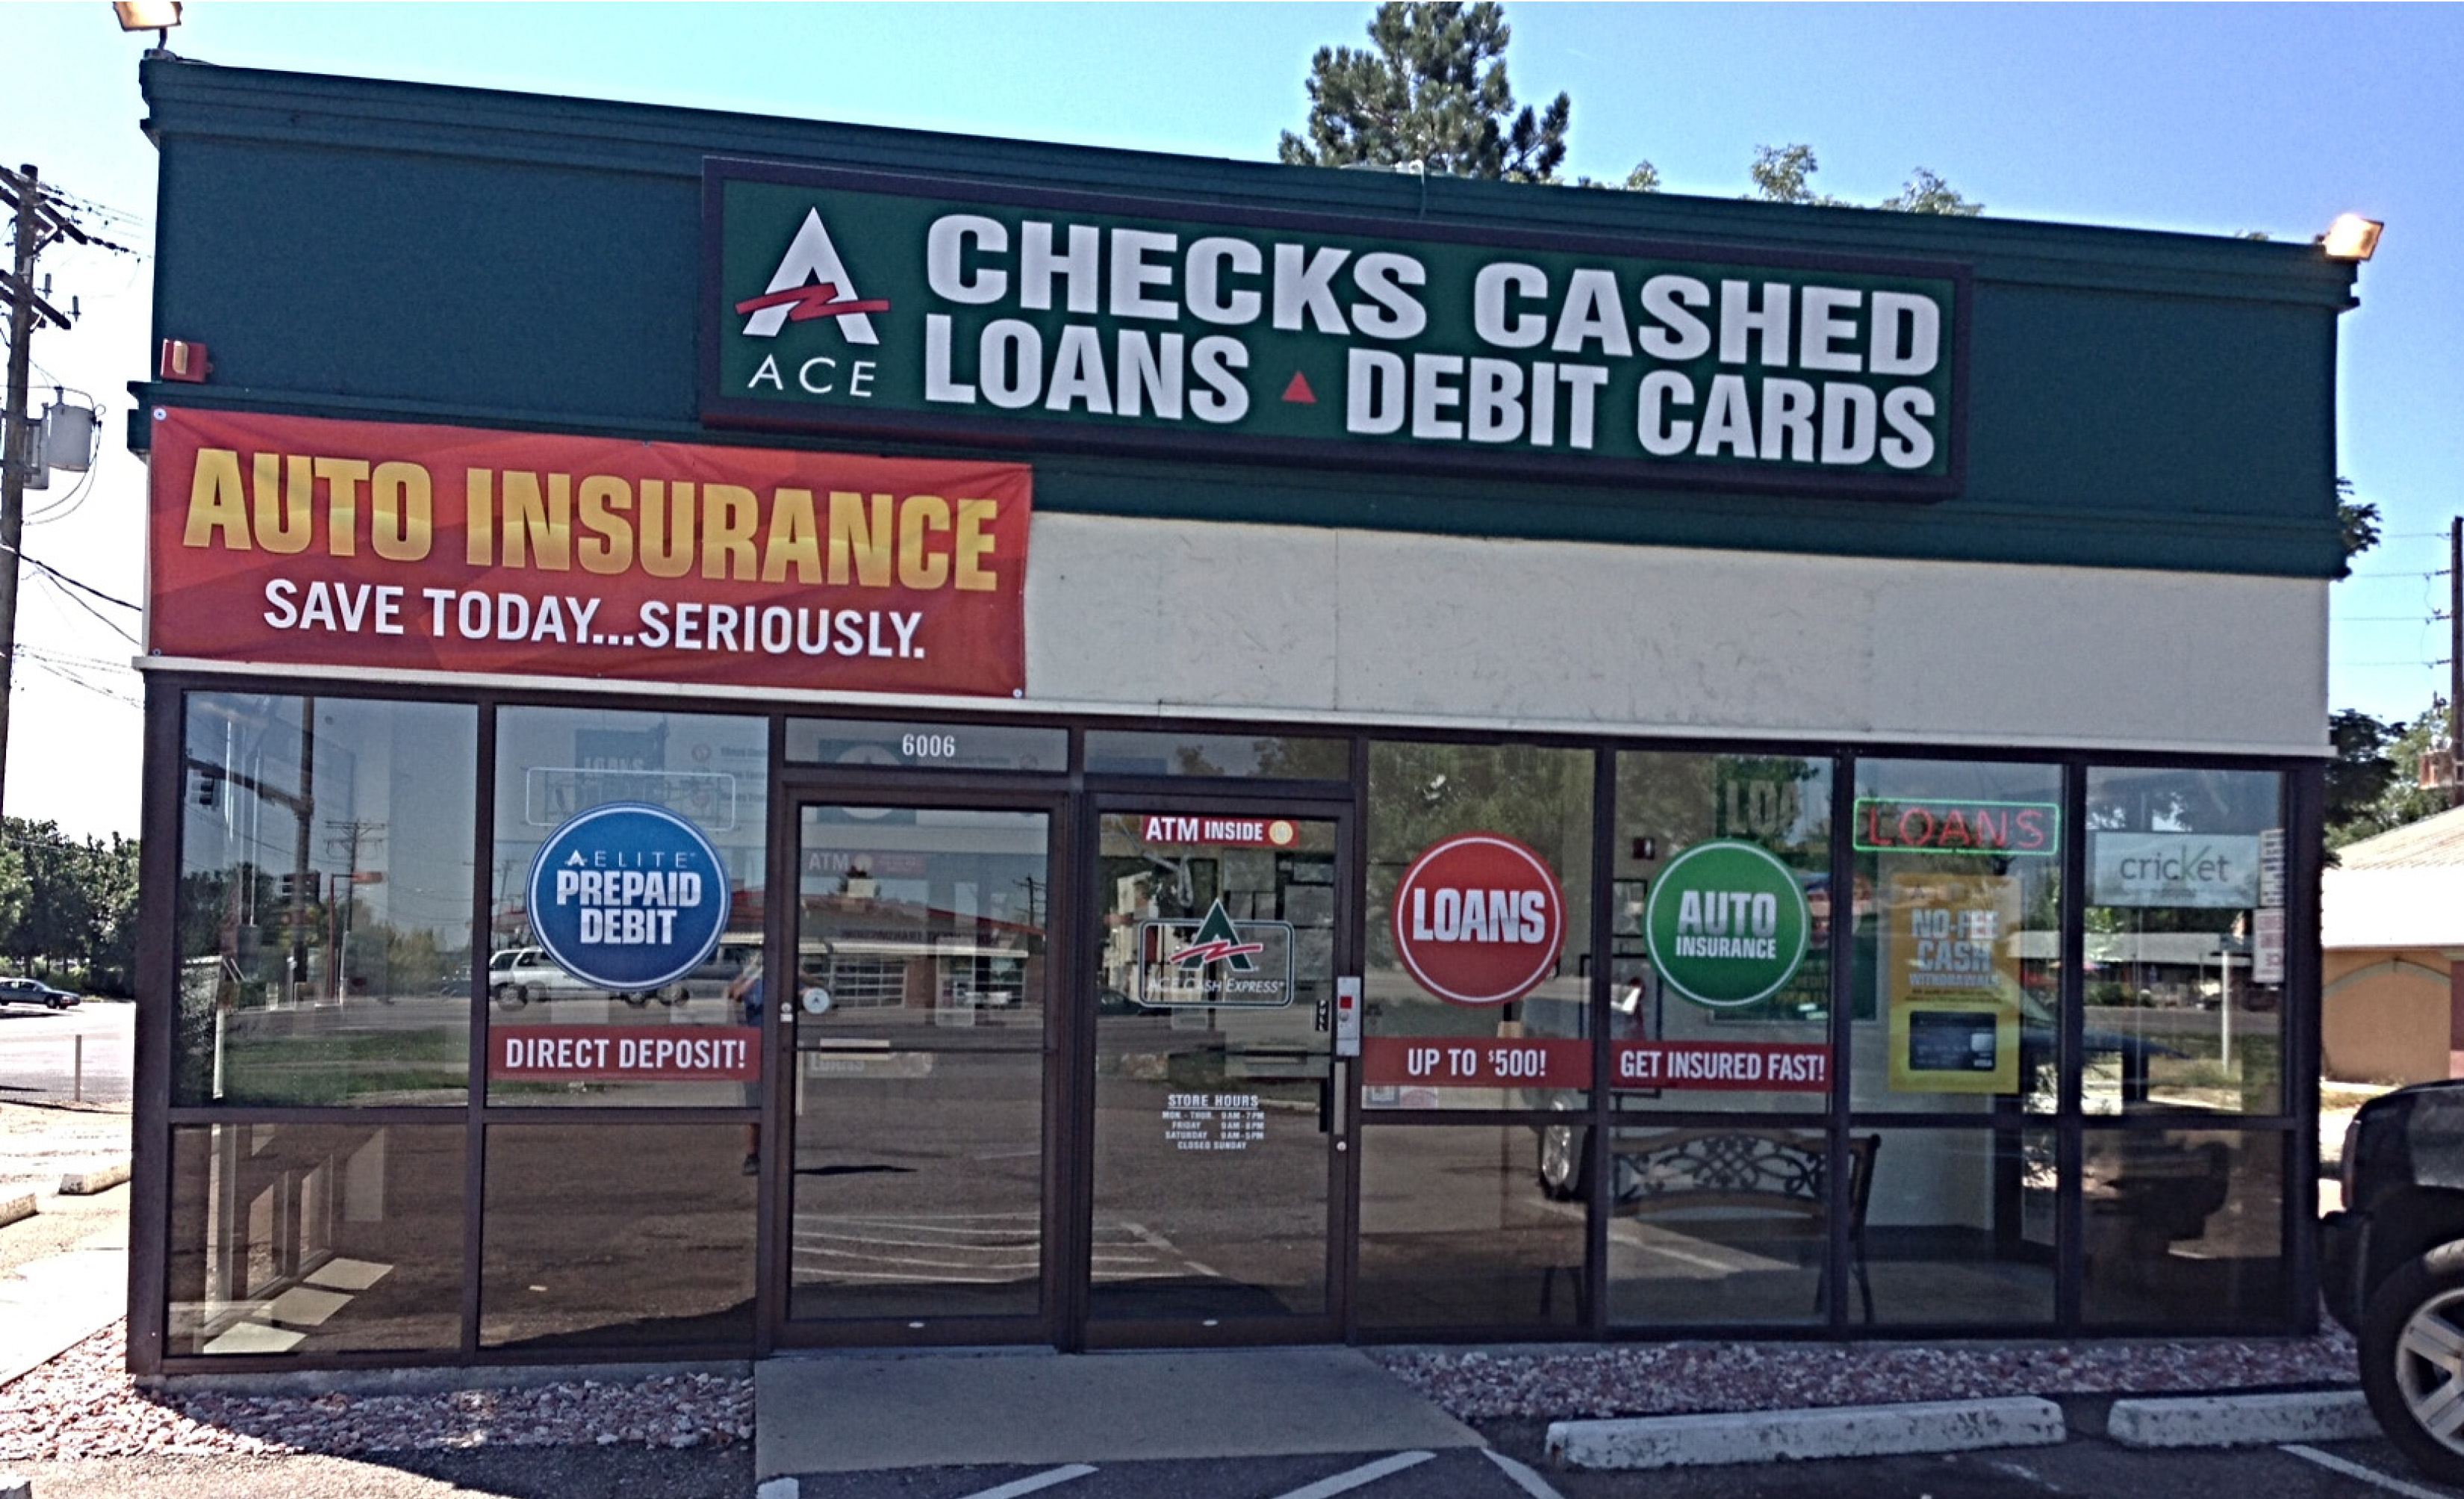 Cash advance marshalltown ia image 3